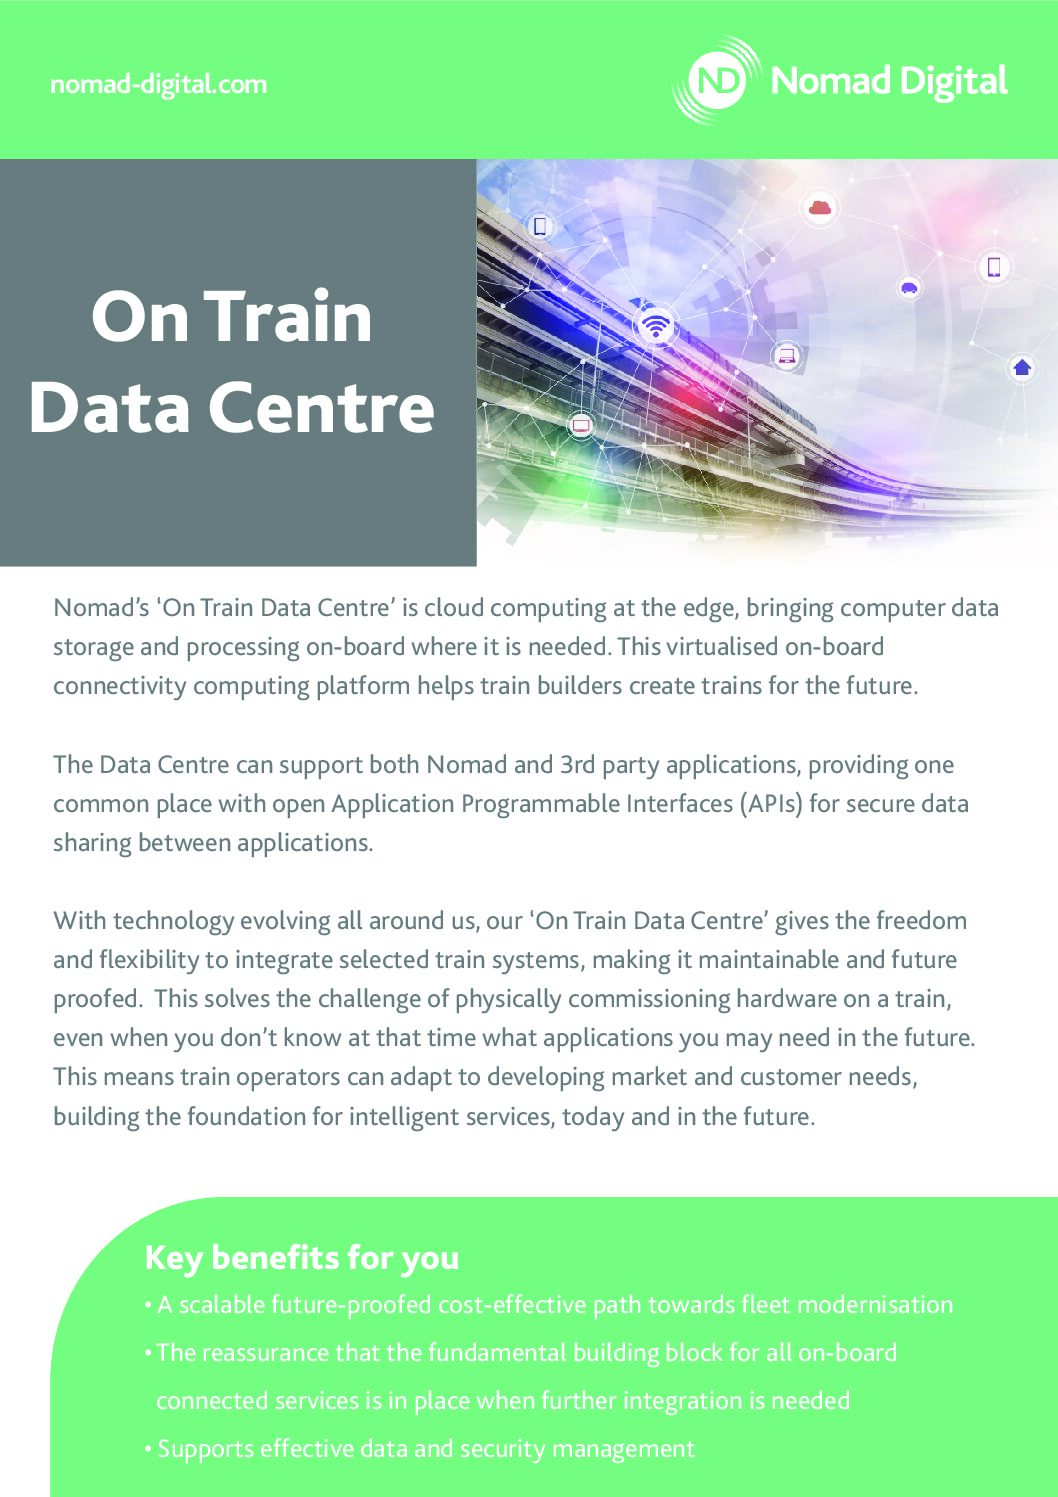 On Train Data Centre and Applications-as-a-Service